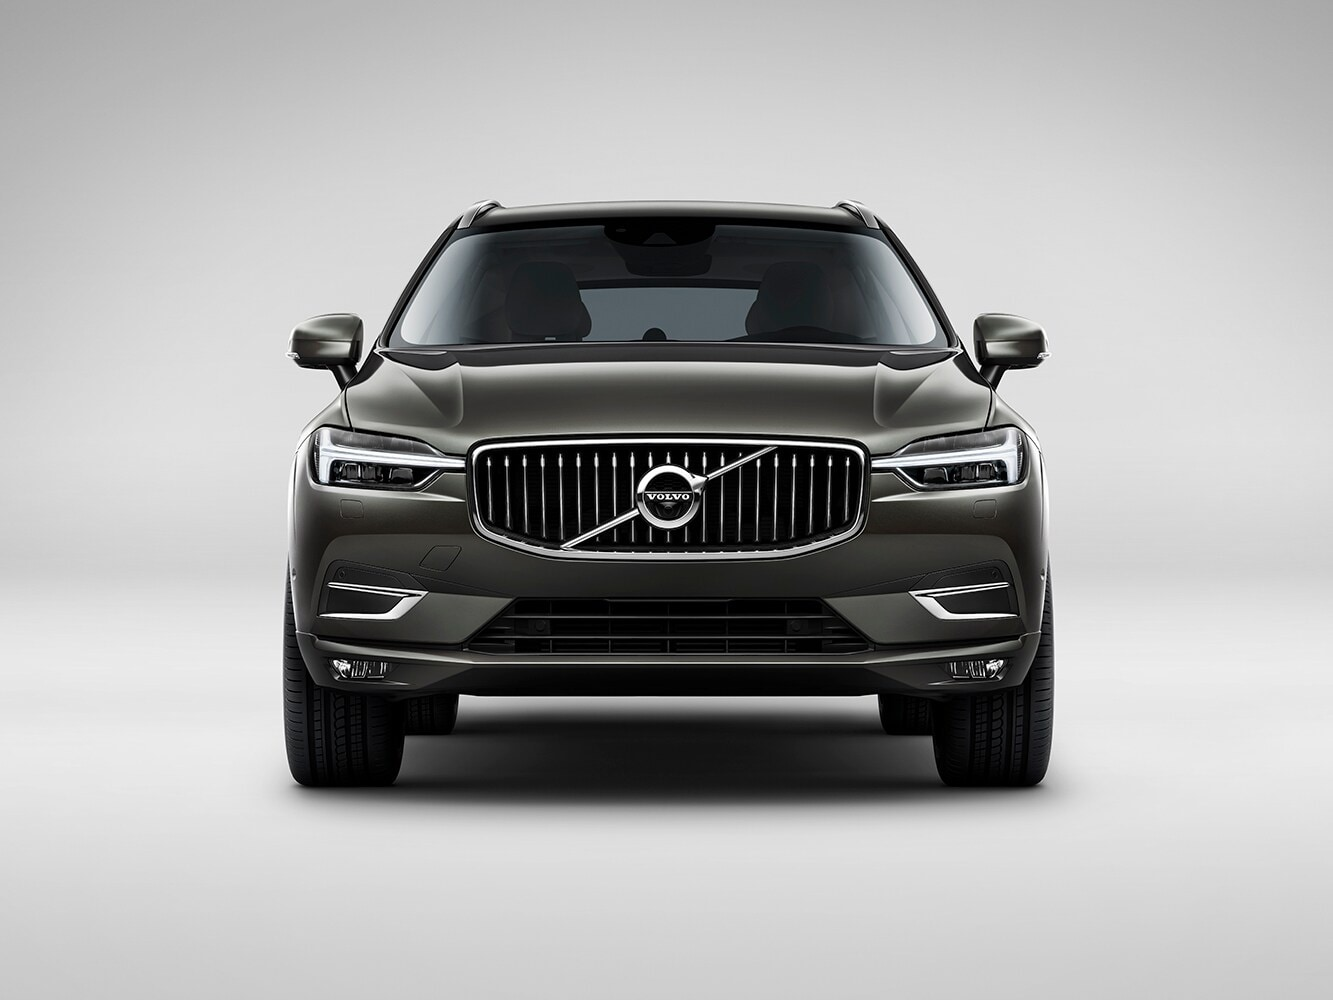 عرض أمامي لفولفو XC60 Inscription الجديدة